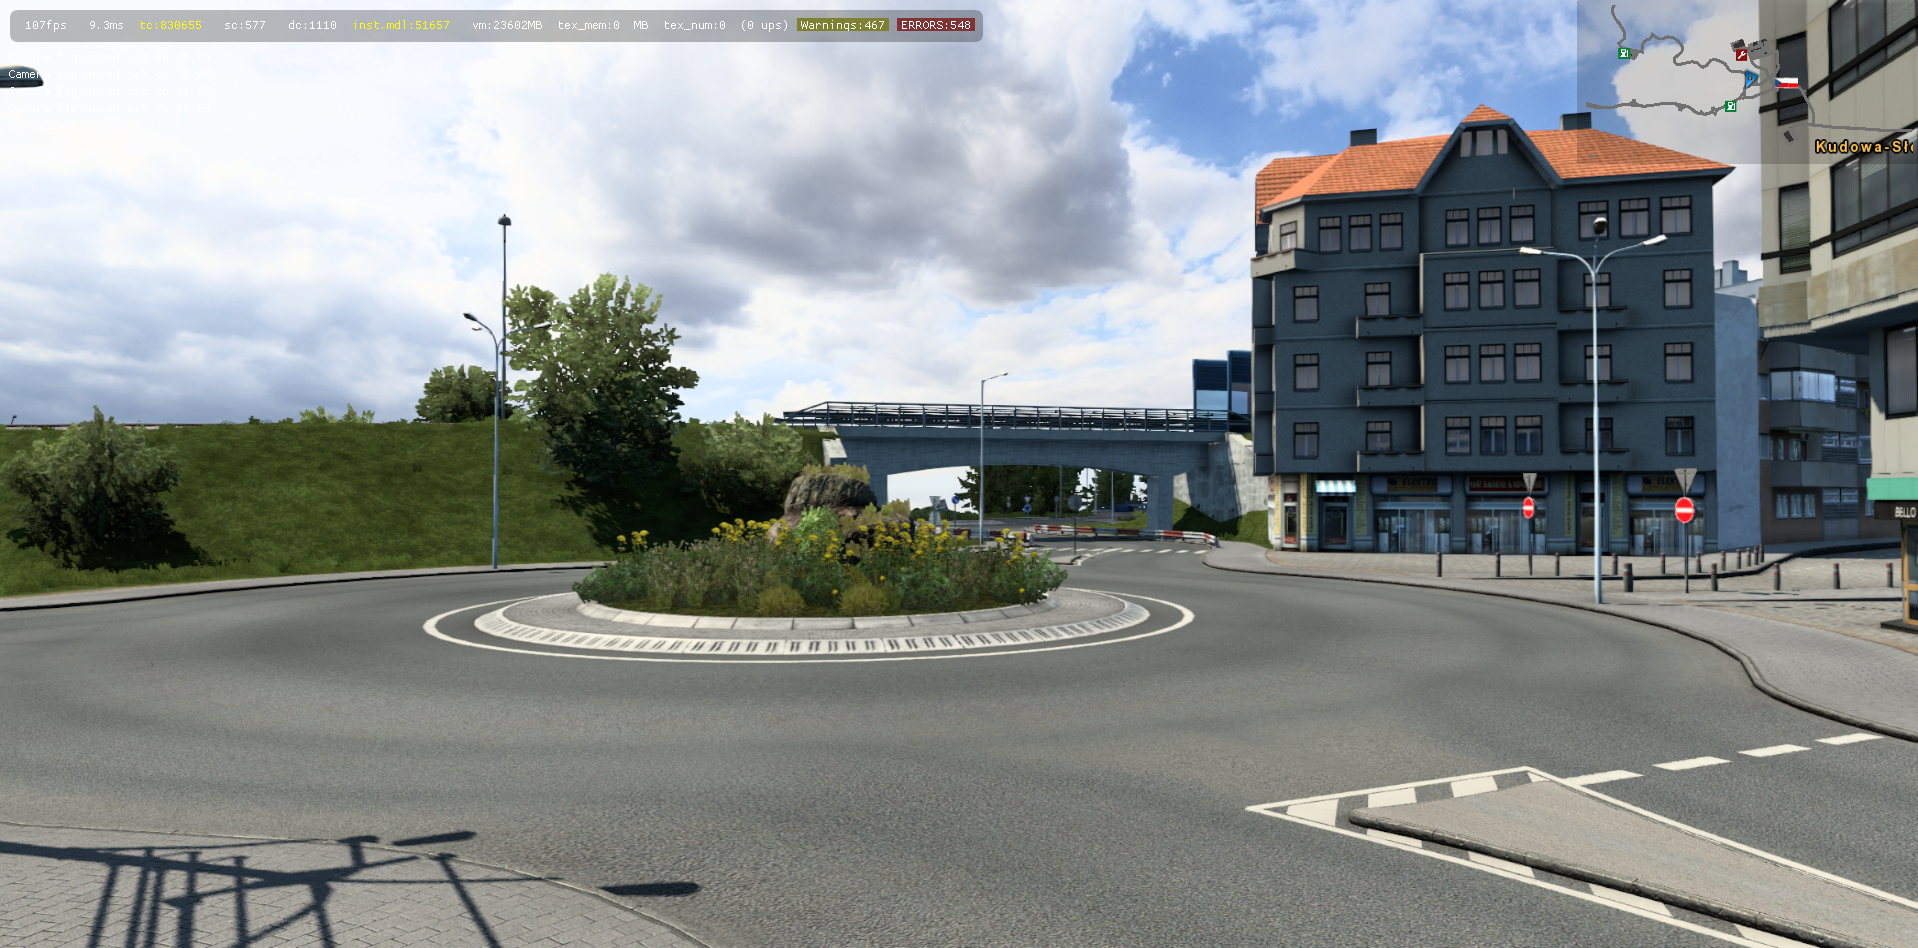 ets2_20210928_184426_00.png